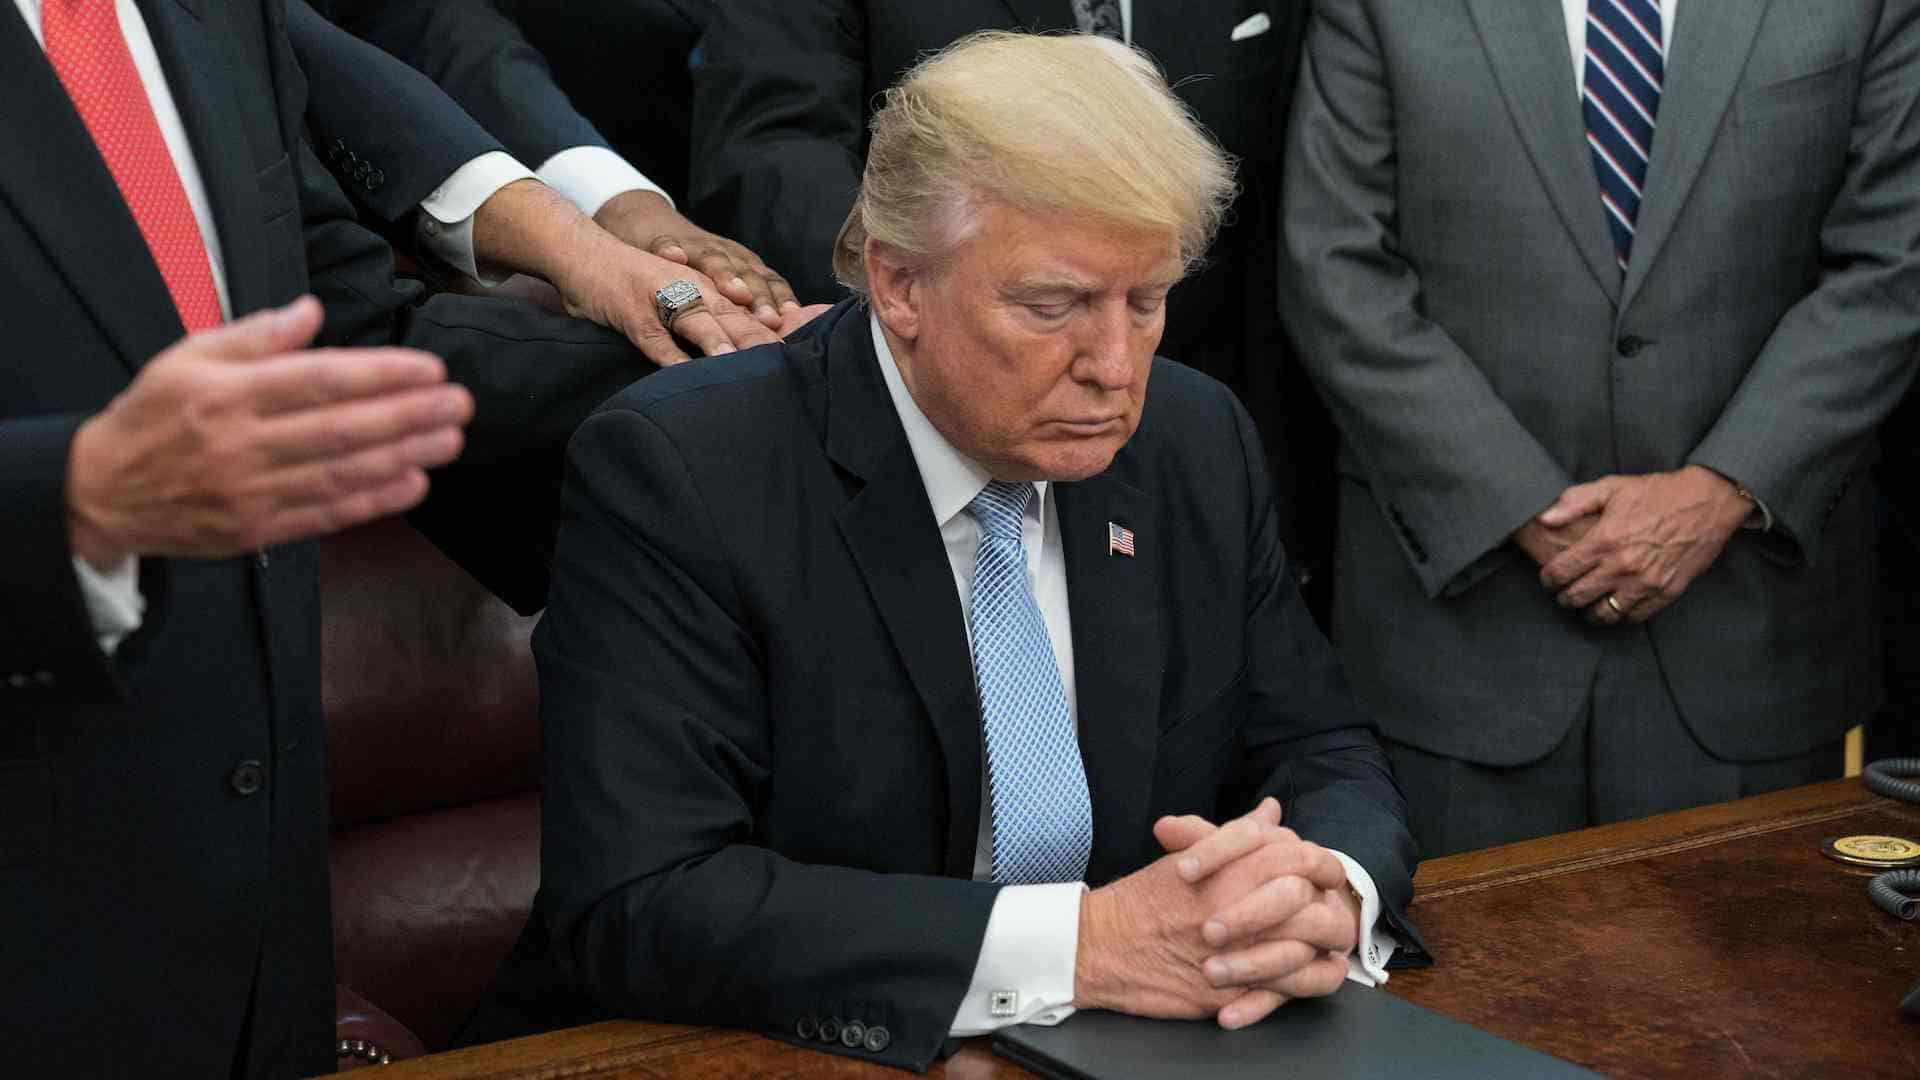 Trump Declares National Day of Prayer in Light of COVID-19 Outbreak